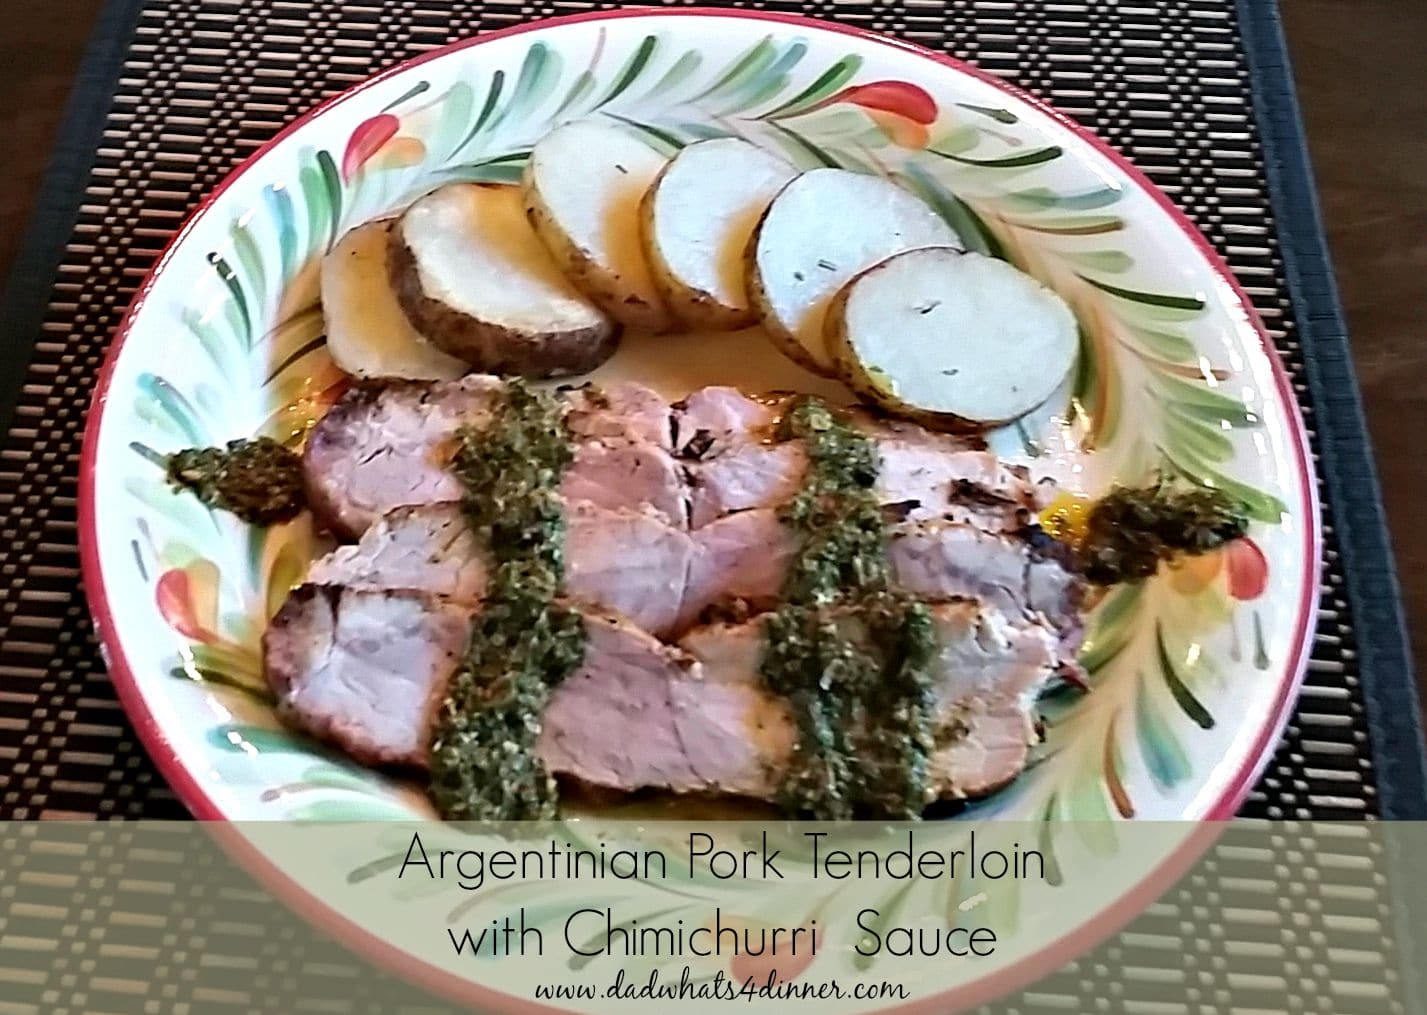 Grilled argentinian pork tenderloin dad whats 4 dinner super easy grilled argentinian pork tenderloin served with chimichurri sauce is bursting with fresh flavors forumfinder Image collections